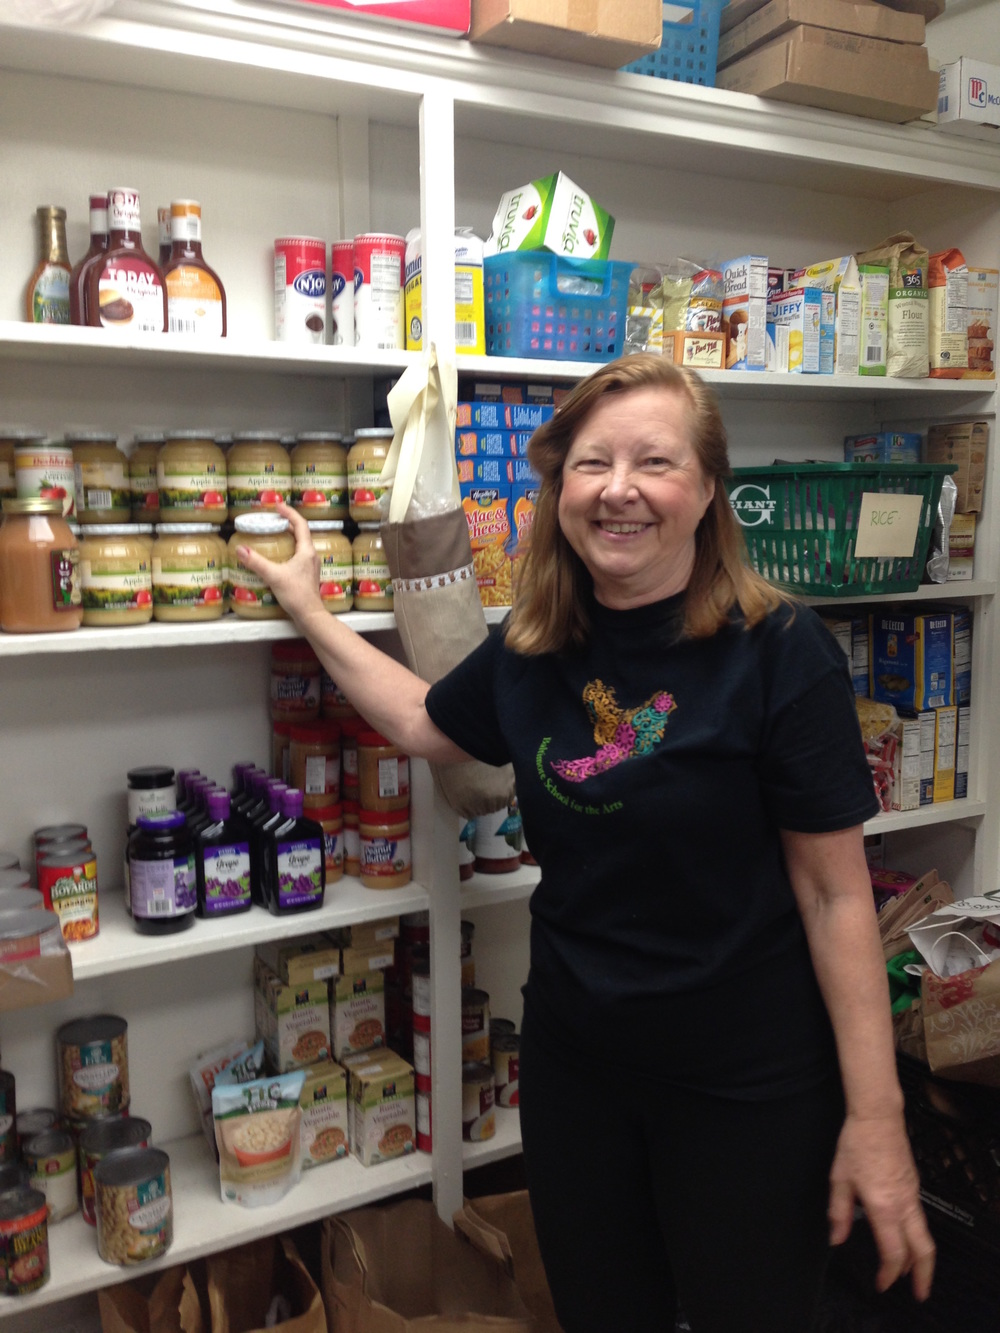 Coleen, one of our regular volunteers, prepares the food pantry for members by stacking the shelves.